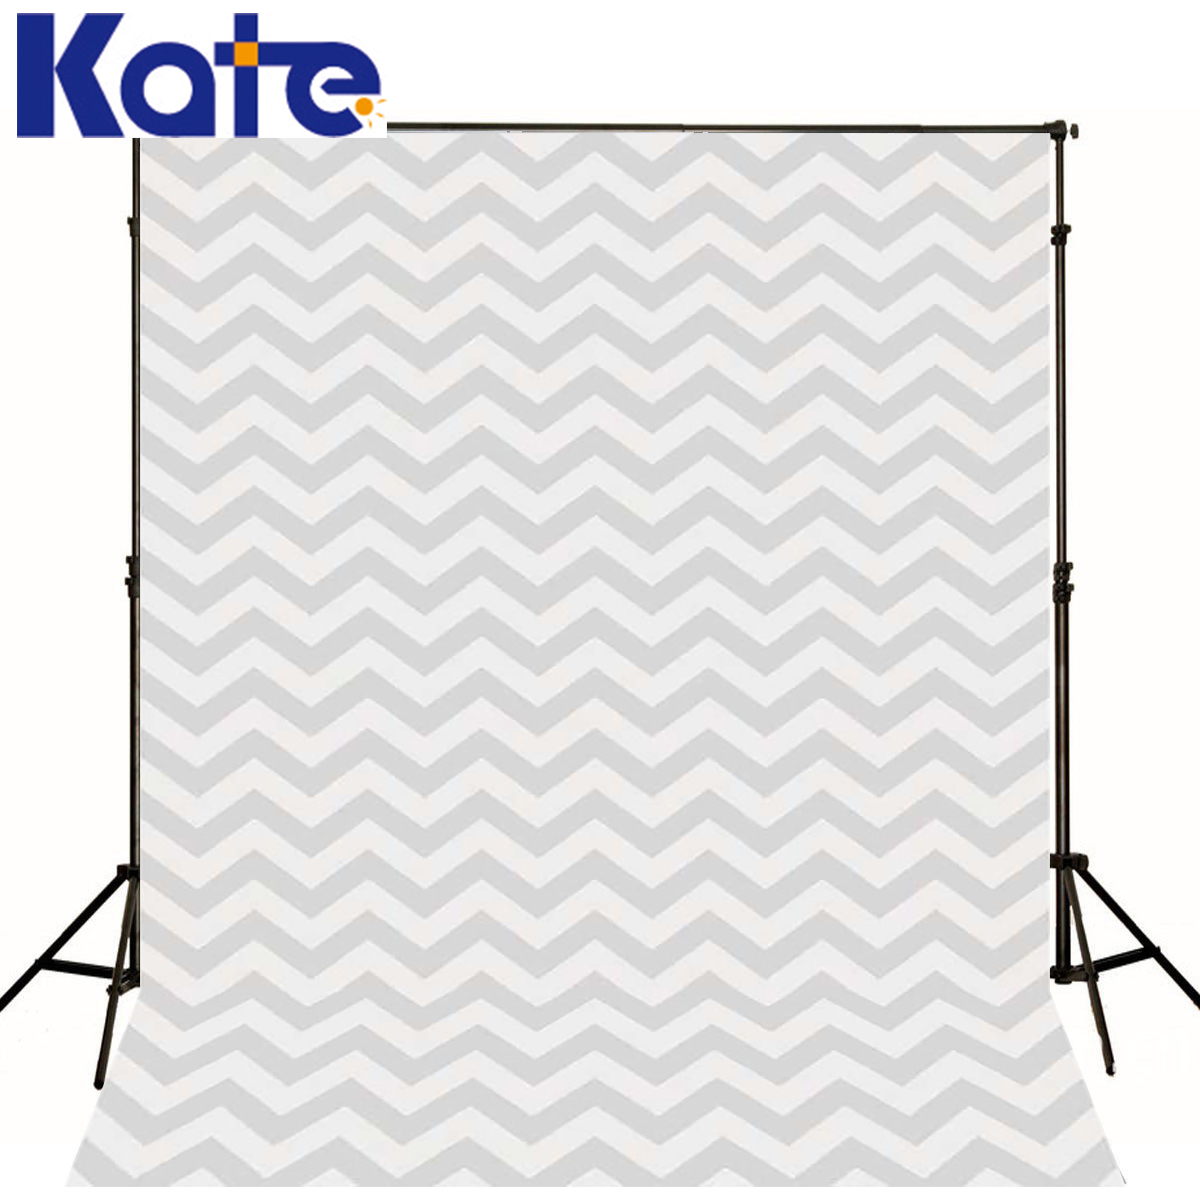 Kate Photography Backdrops White Walls Baby Studio Black And White Wave Digital Studio Background for photo shoot digital<br><br>Aliexpress